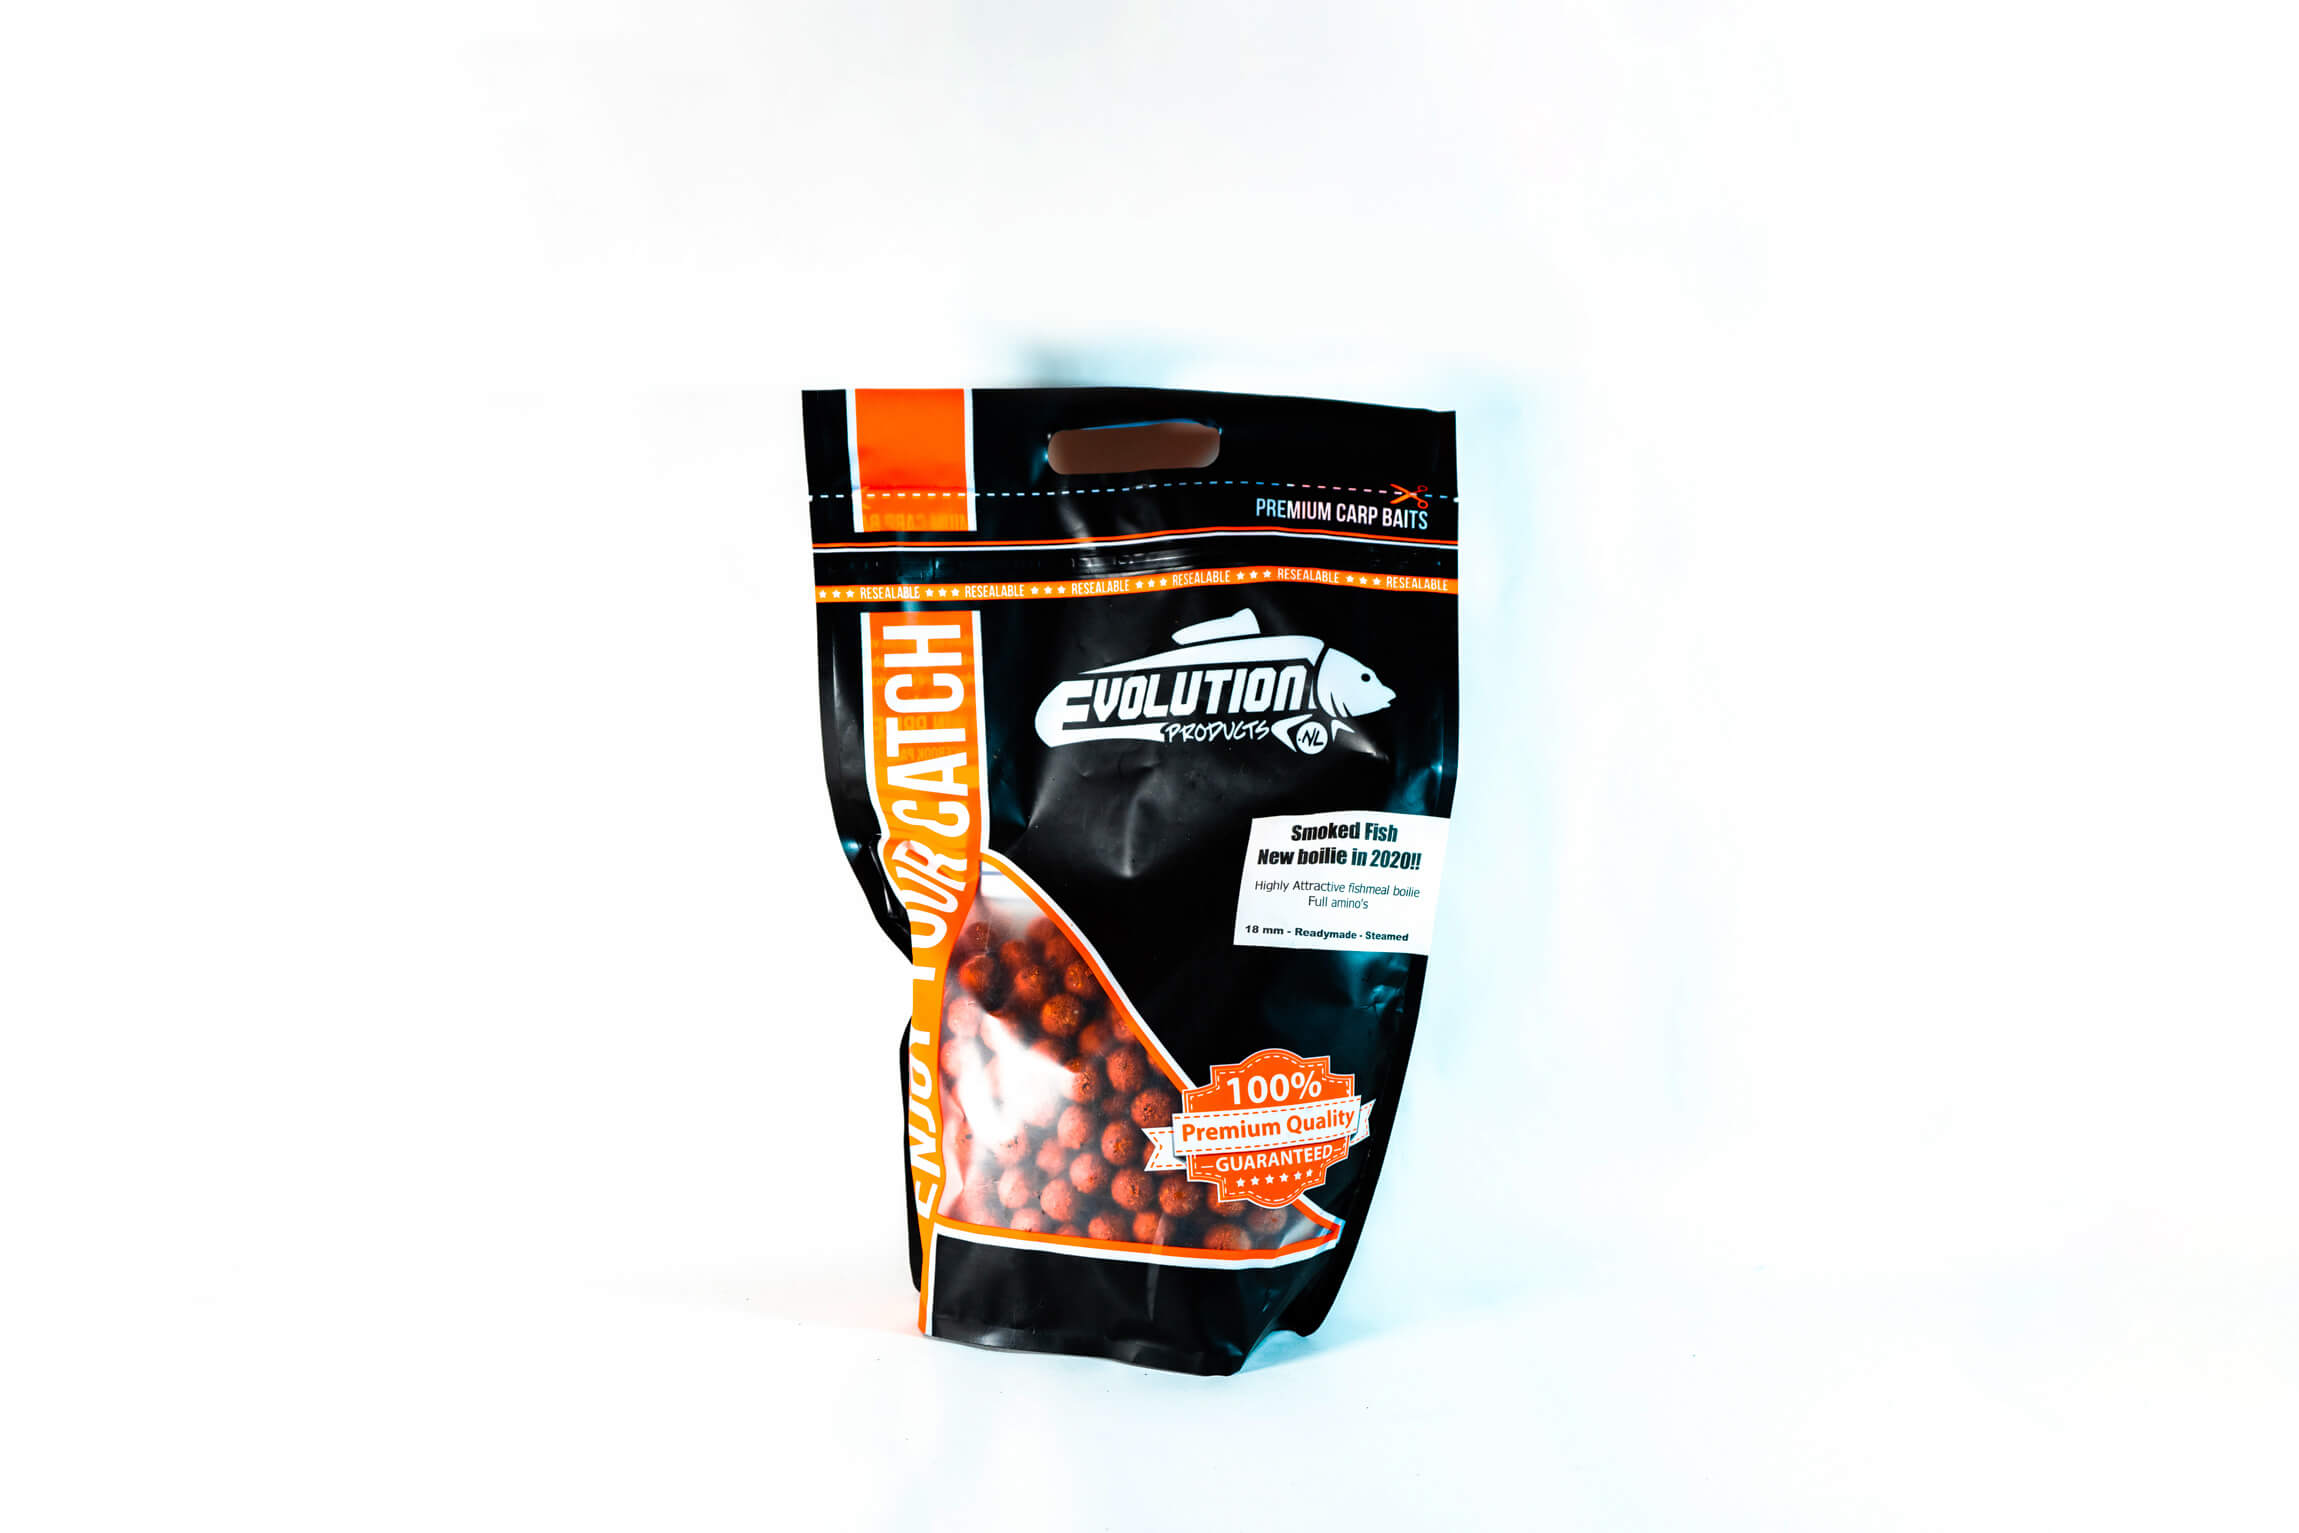 evolution-products-Readymade-Boilies-Smoked-Fish